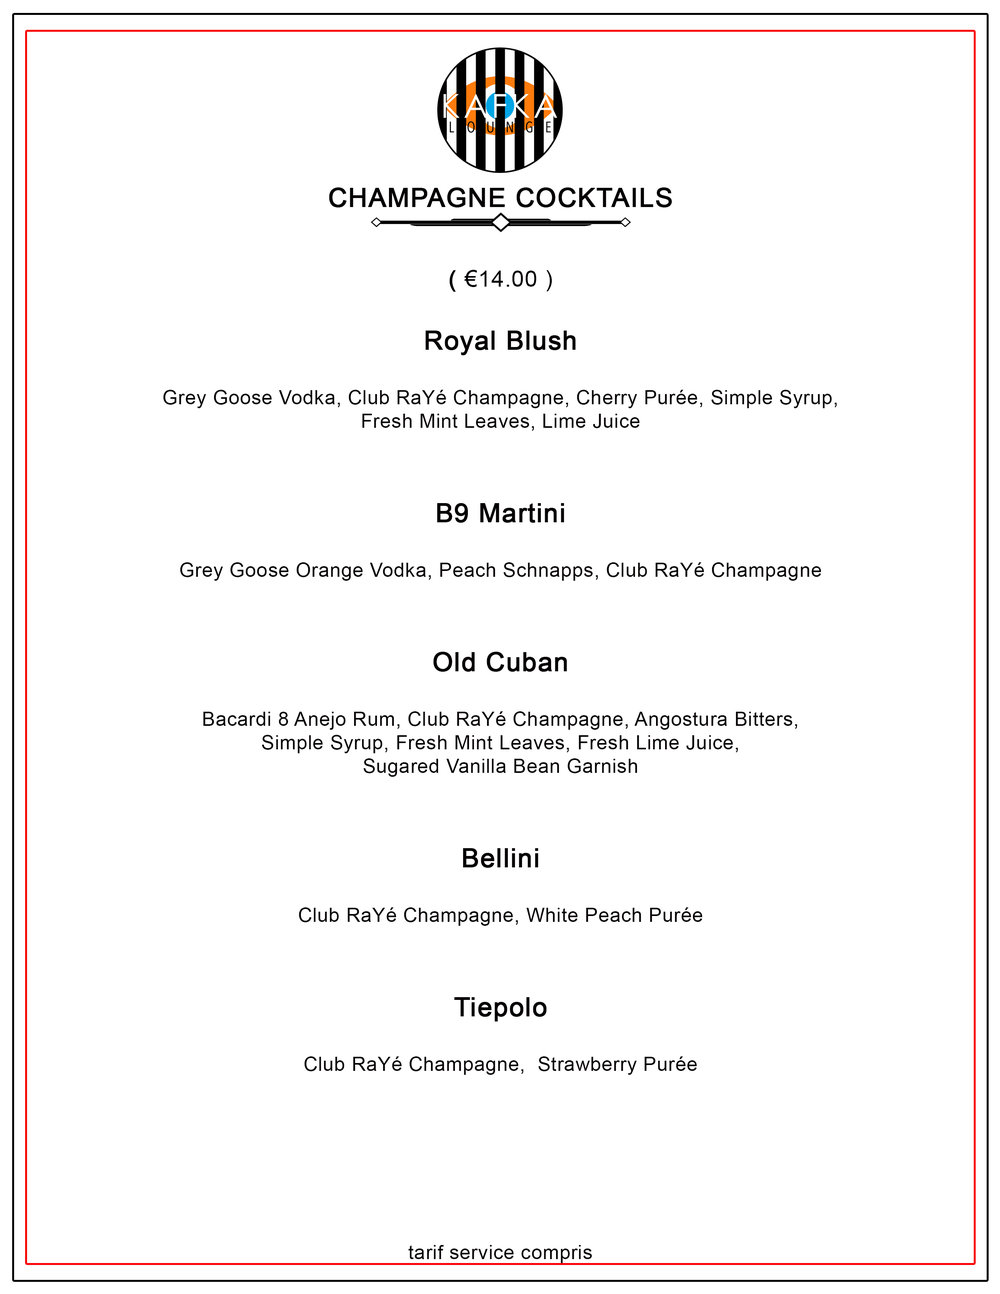 Champagnes Cocktails menu_2.0.jpg